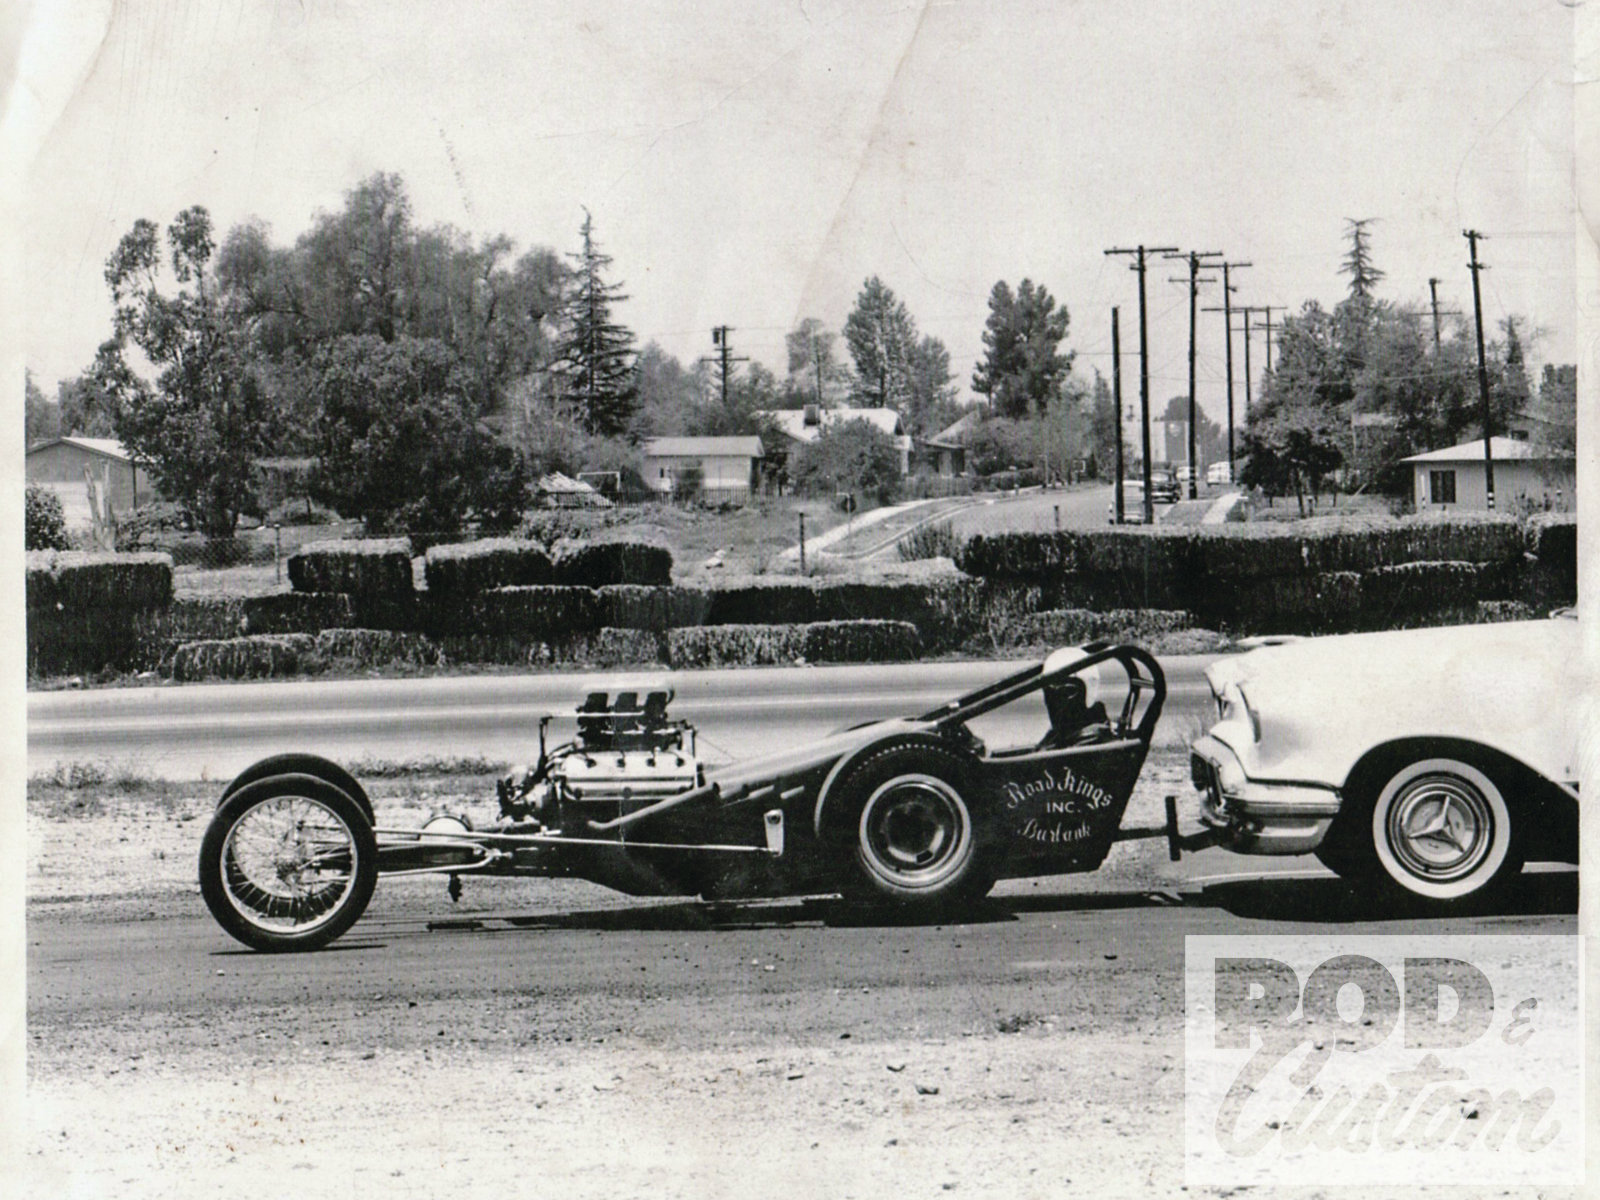 "Pictured is the Road Kings club dragster at San Fernando with Rod Peppmuller in his Olds pushing Don on the road after he come out of the pits. ""Rod Peppmuller was the chassis builder of the Road Kings,"" Don says. ""He built the chassis. We took it out to San Fernando, and Peppmuller and I drove it. And man, once I drove that dragster I was hooked."" According to Muravez, the dragstrip is where garage sales are held today."